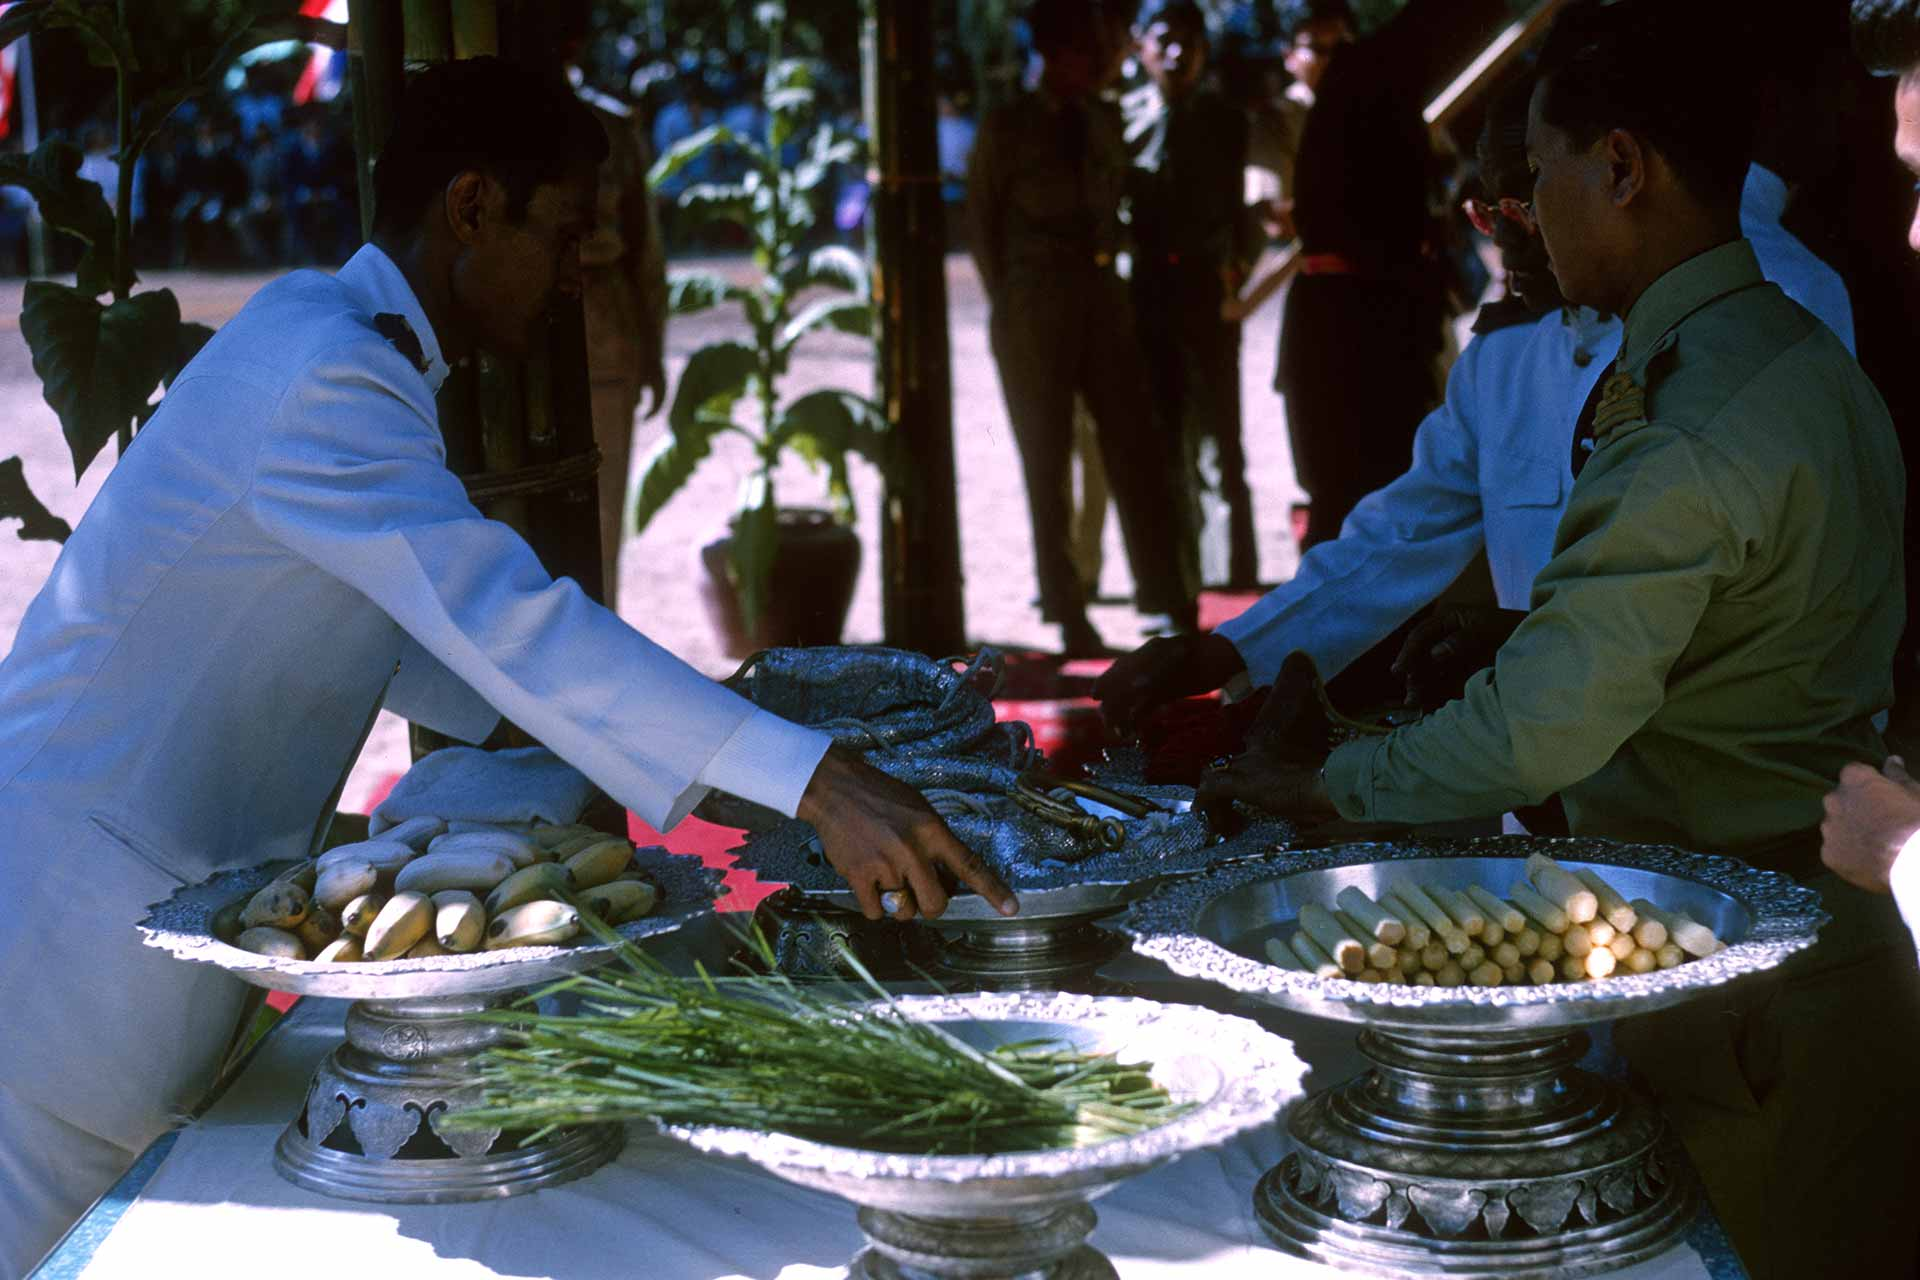 Military personnel prepare platters of food